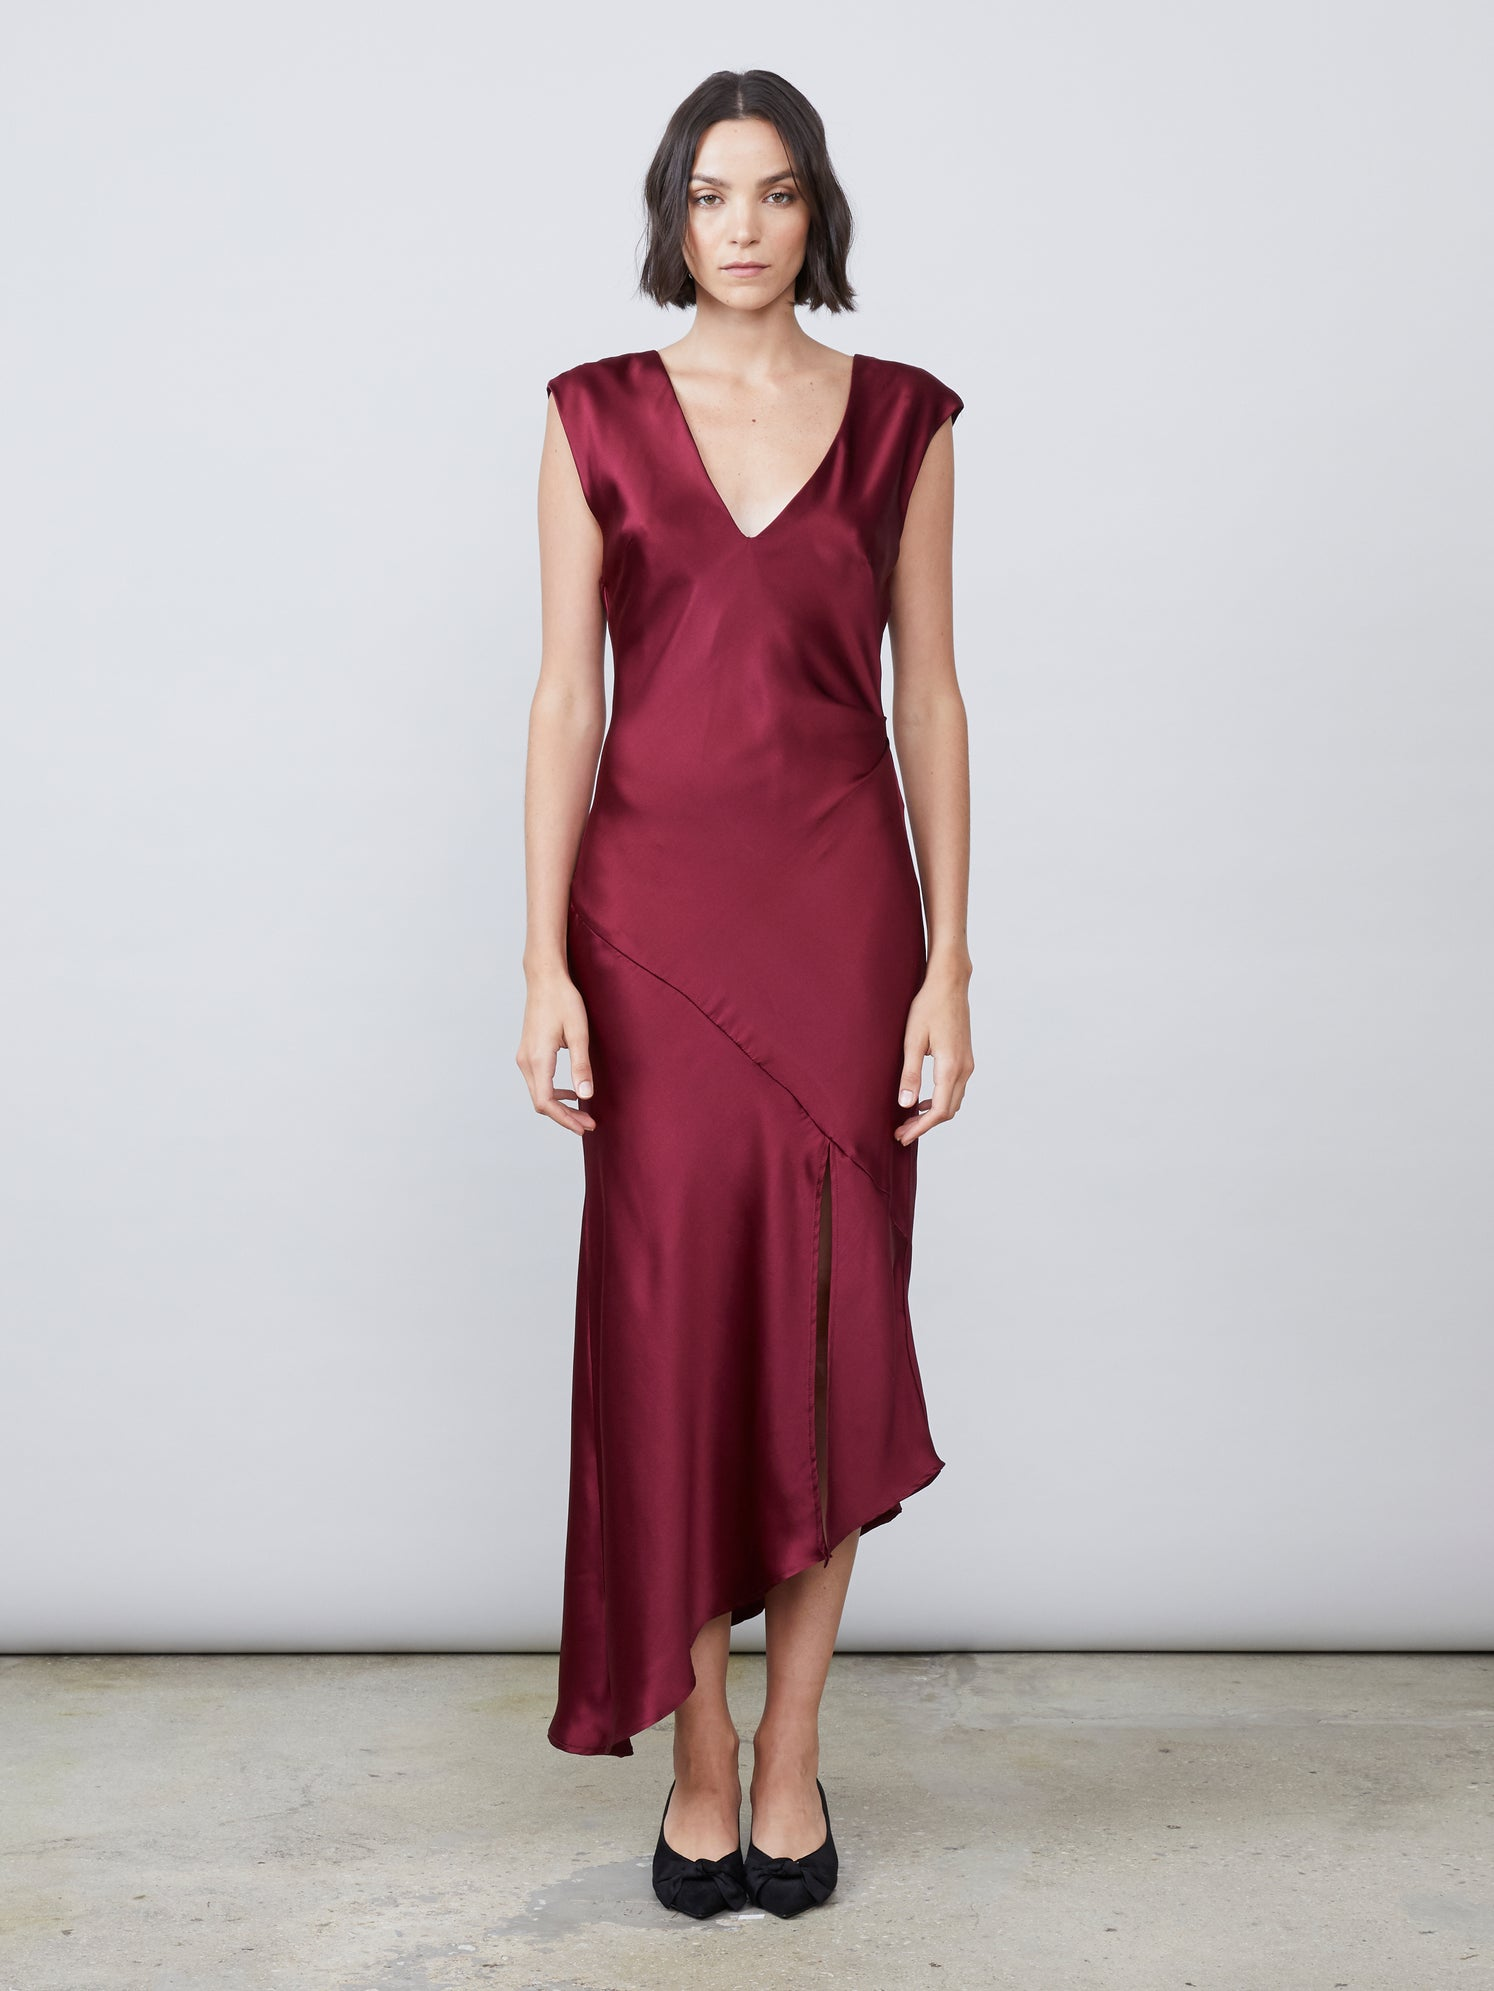 Silk charmeuse draped v neck deep v back slip dress